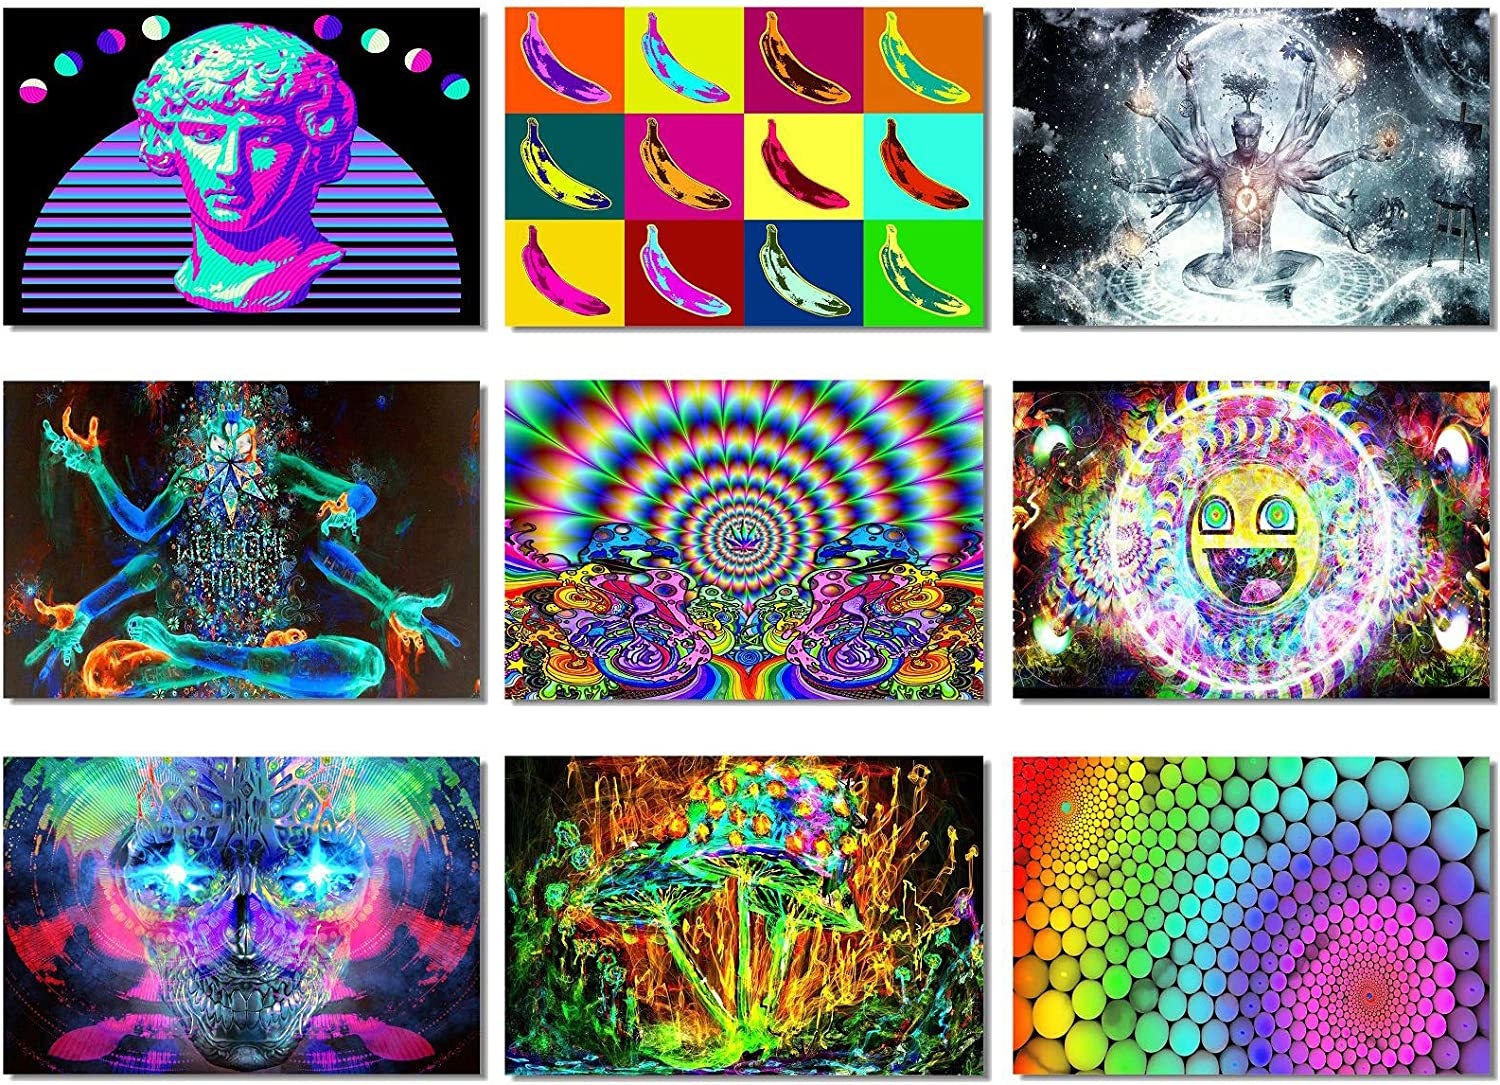 Amazon Com 9x Fabric Poster Psychedelic Trippy Colorful Trippy Surreal Abstract Astral Digital Wall Art Prints 20x13 50x33cm 1 9 Not Blacklight Posters Prints Indie drawings trippy drawings art drawings sketches easy drawings psychedelic drawings mini canvas art diy canvas trippy painting painting & drawing. 9x fabric poster psychedelic trippy colorful trippy surreal abstract astral digital wall art prints 20x13 50x33cm 1 9 not blacklight